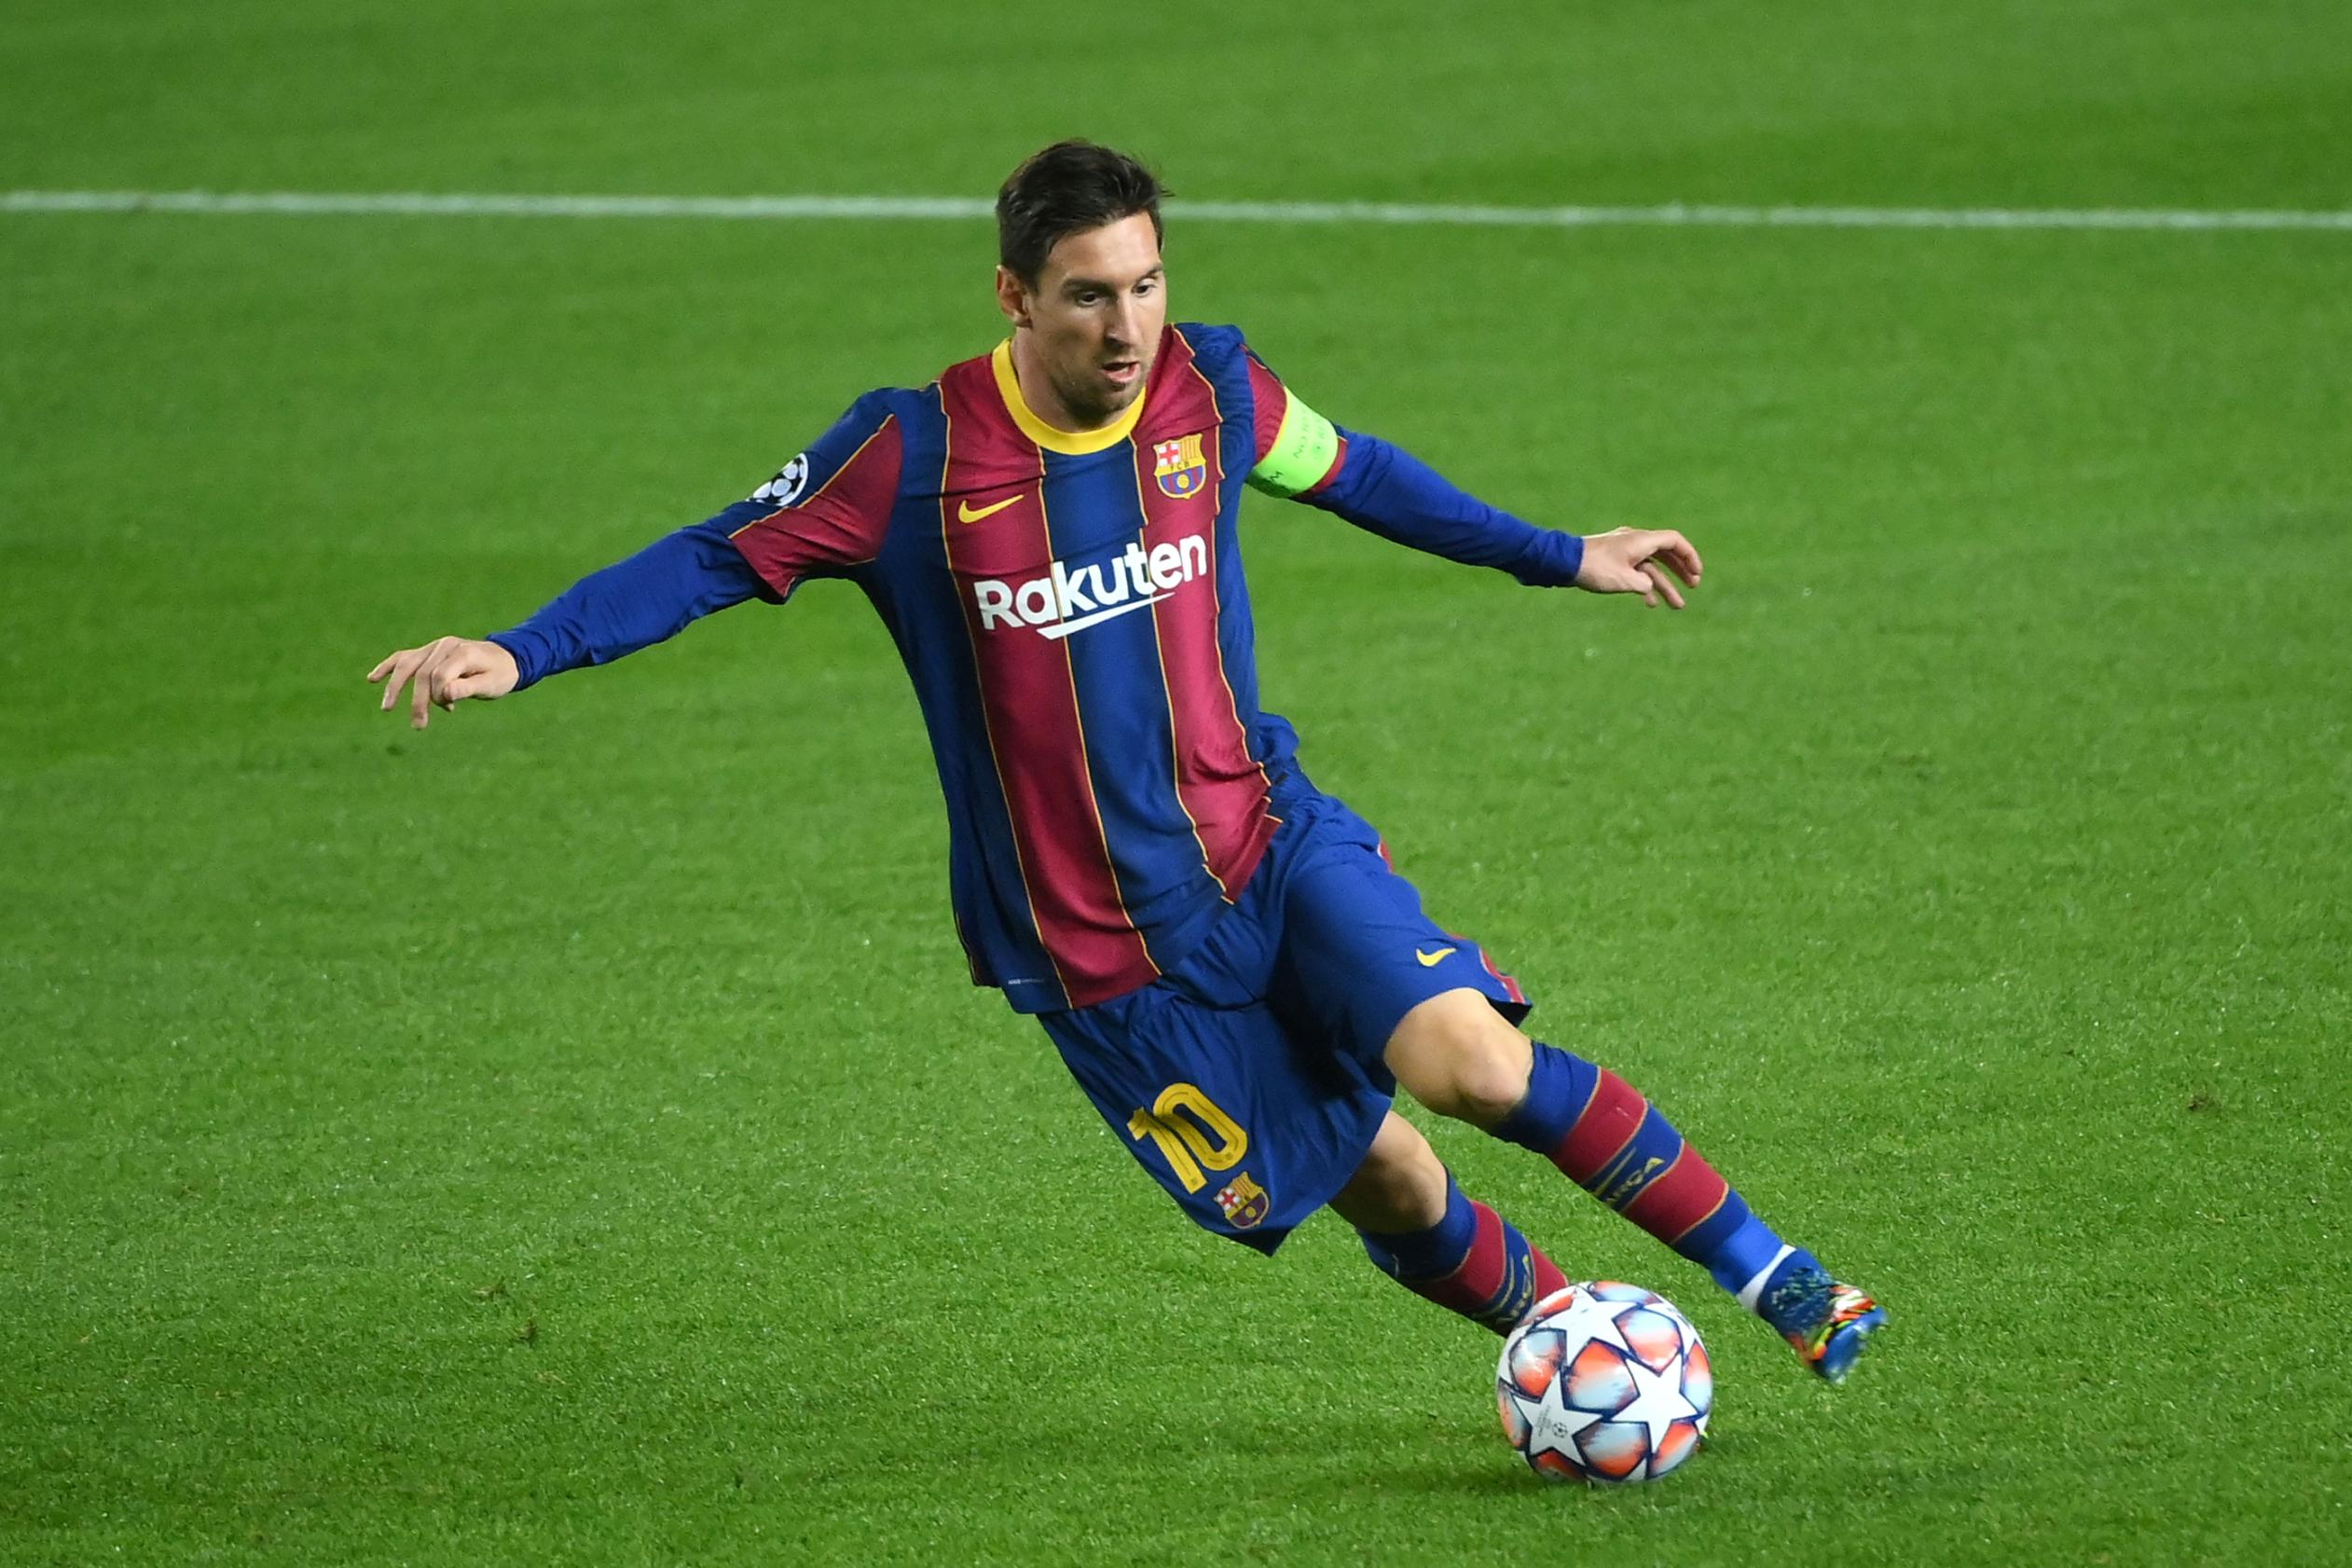 Lionel Messi breaks Champions League record as teenagers give Barcelona hope for the future